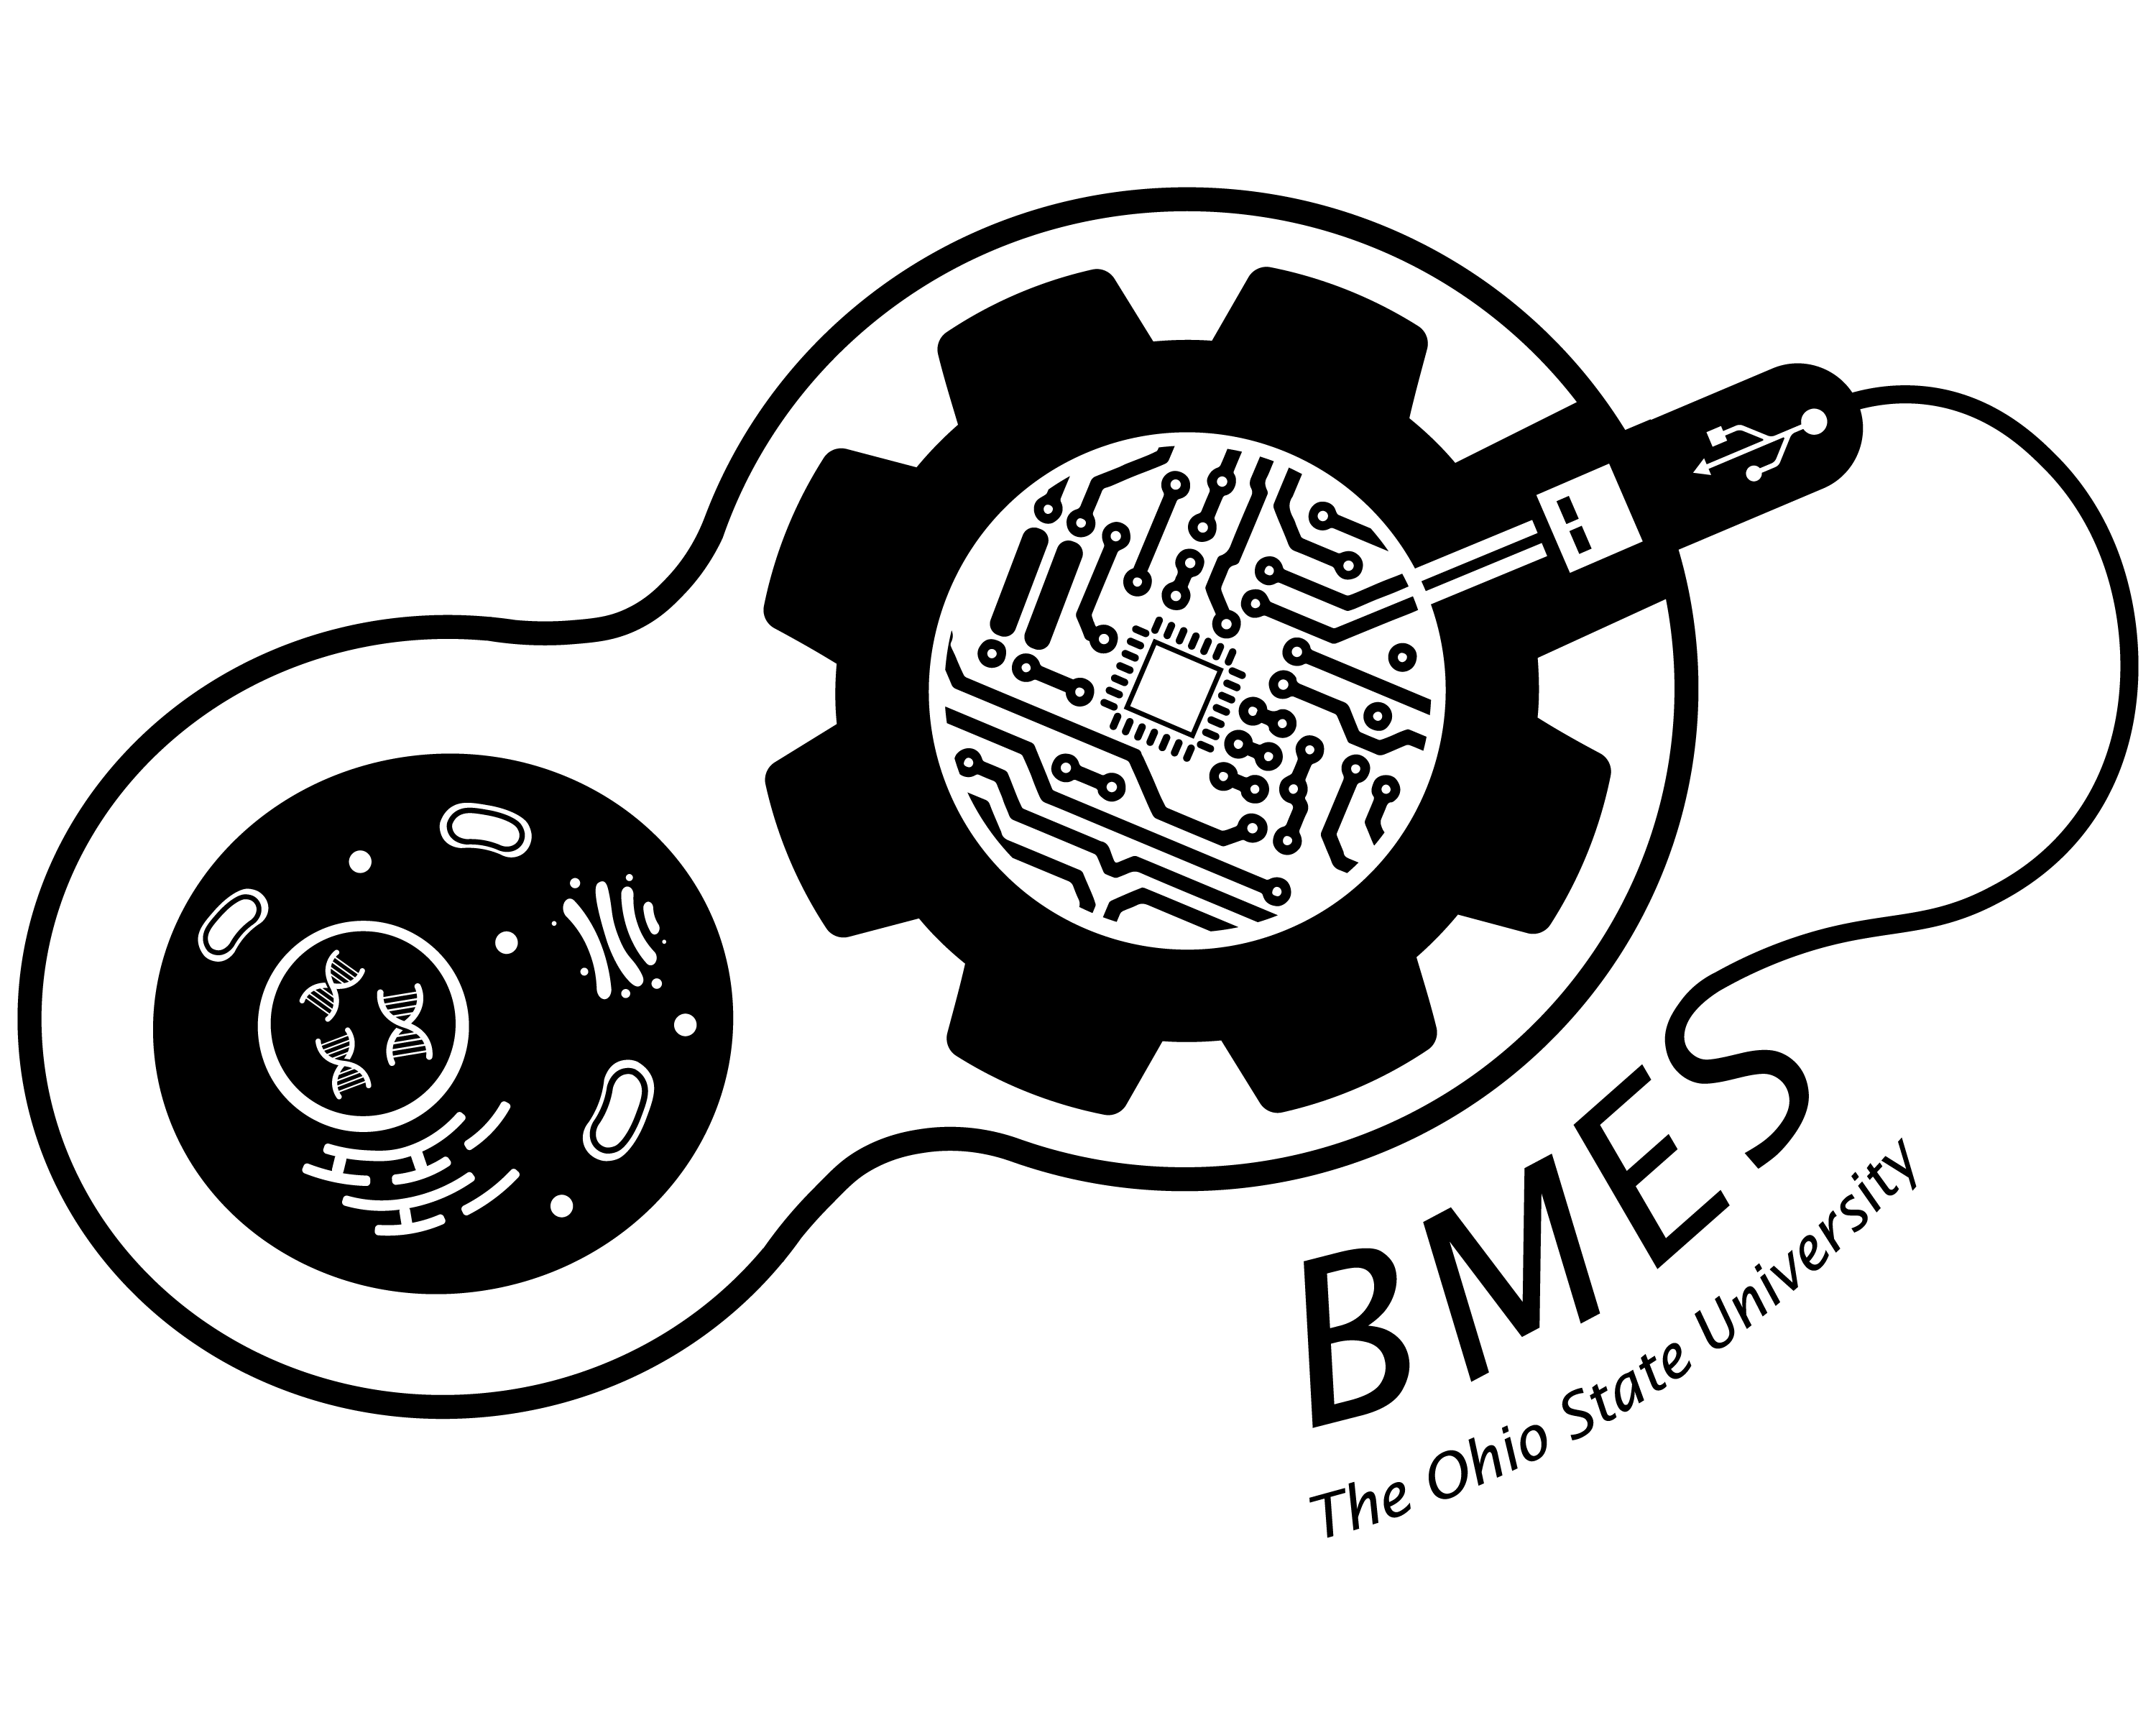 BMES at OSU | The Official Website for the Biomedical